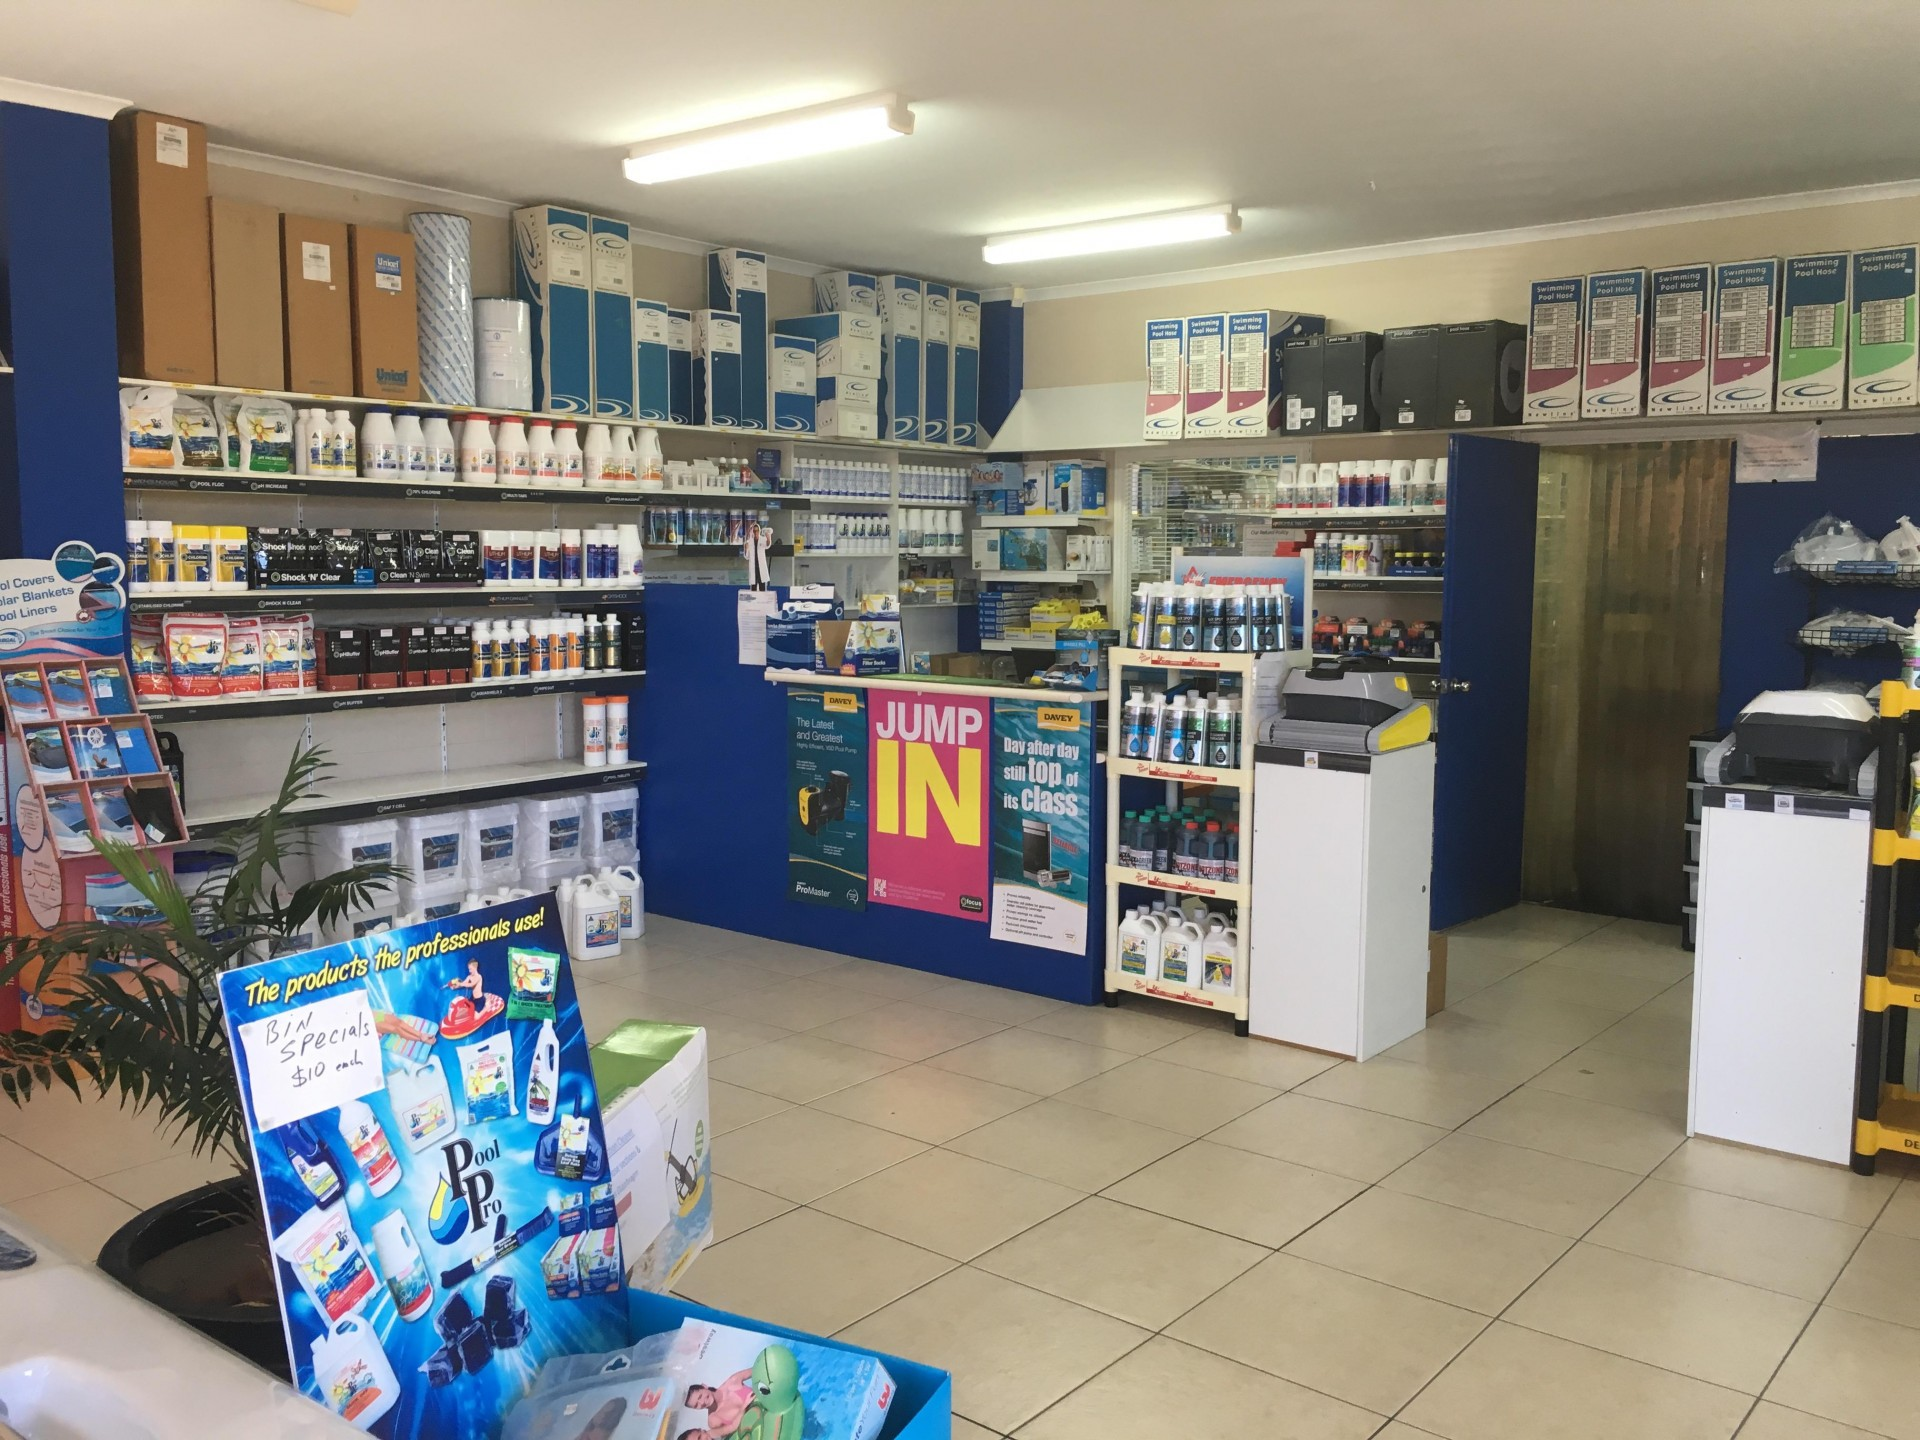 Privately Owned Pool Supplies & Service Business (for sale by MBS)